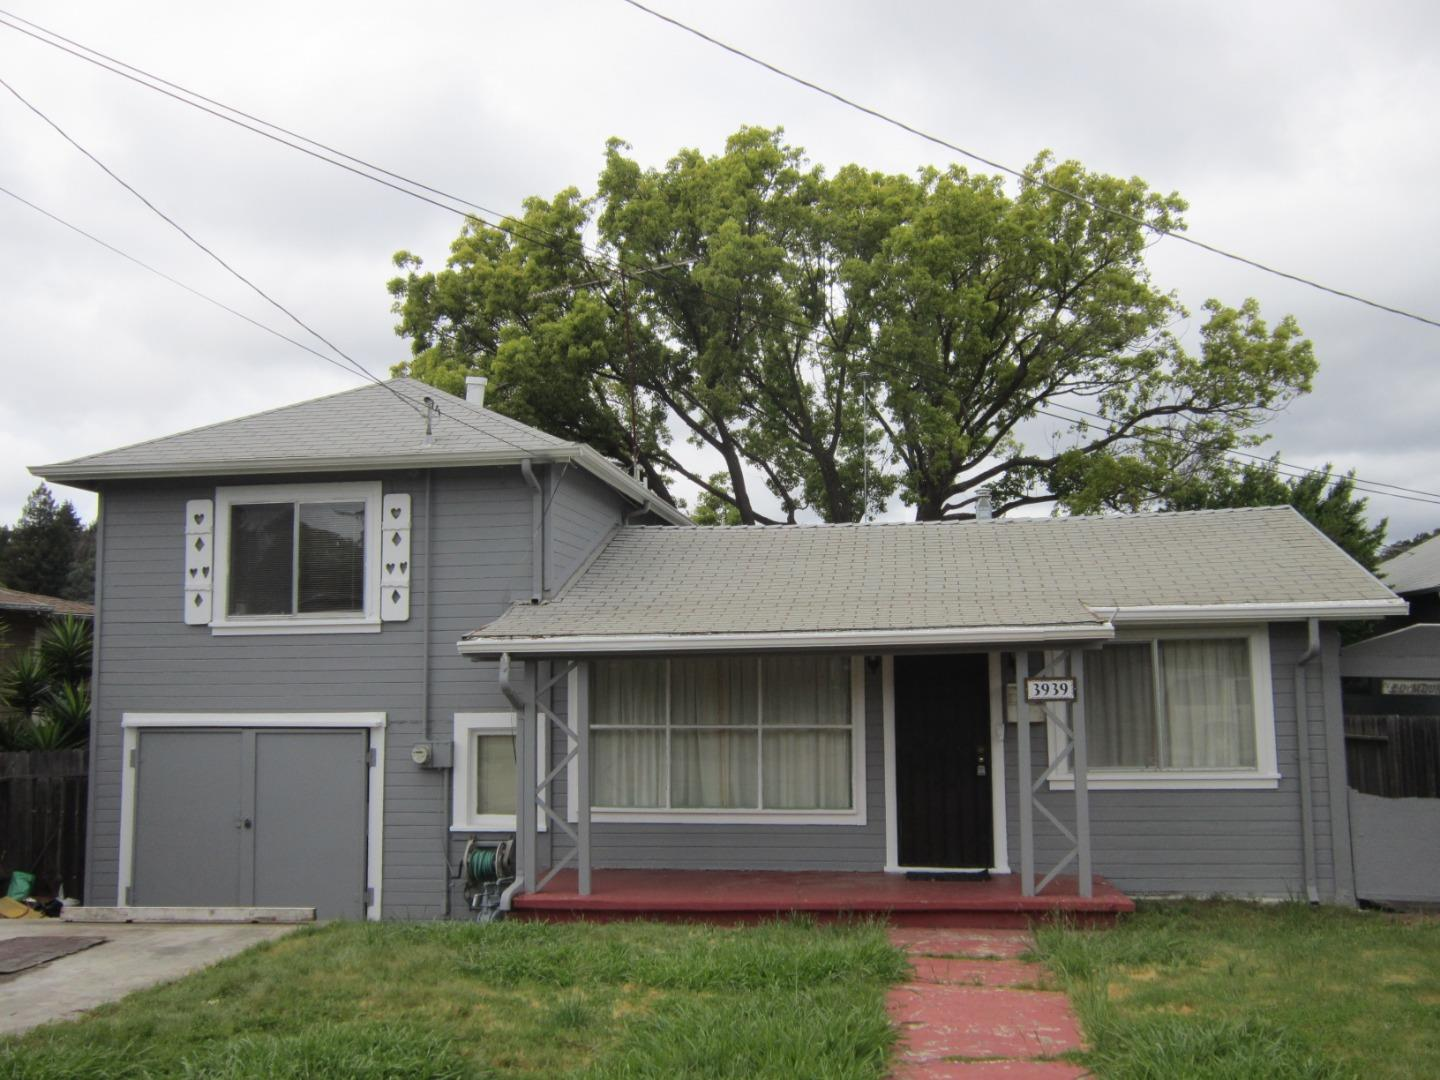 Photo of  3939 Edgemoor Place Oakland 94605